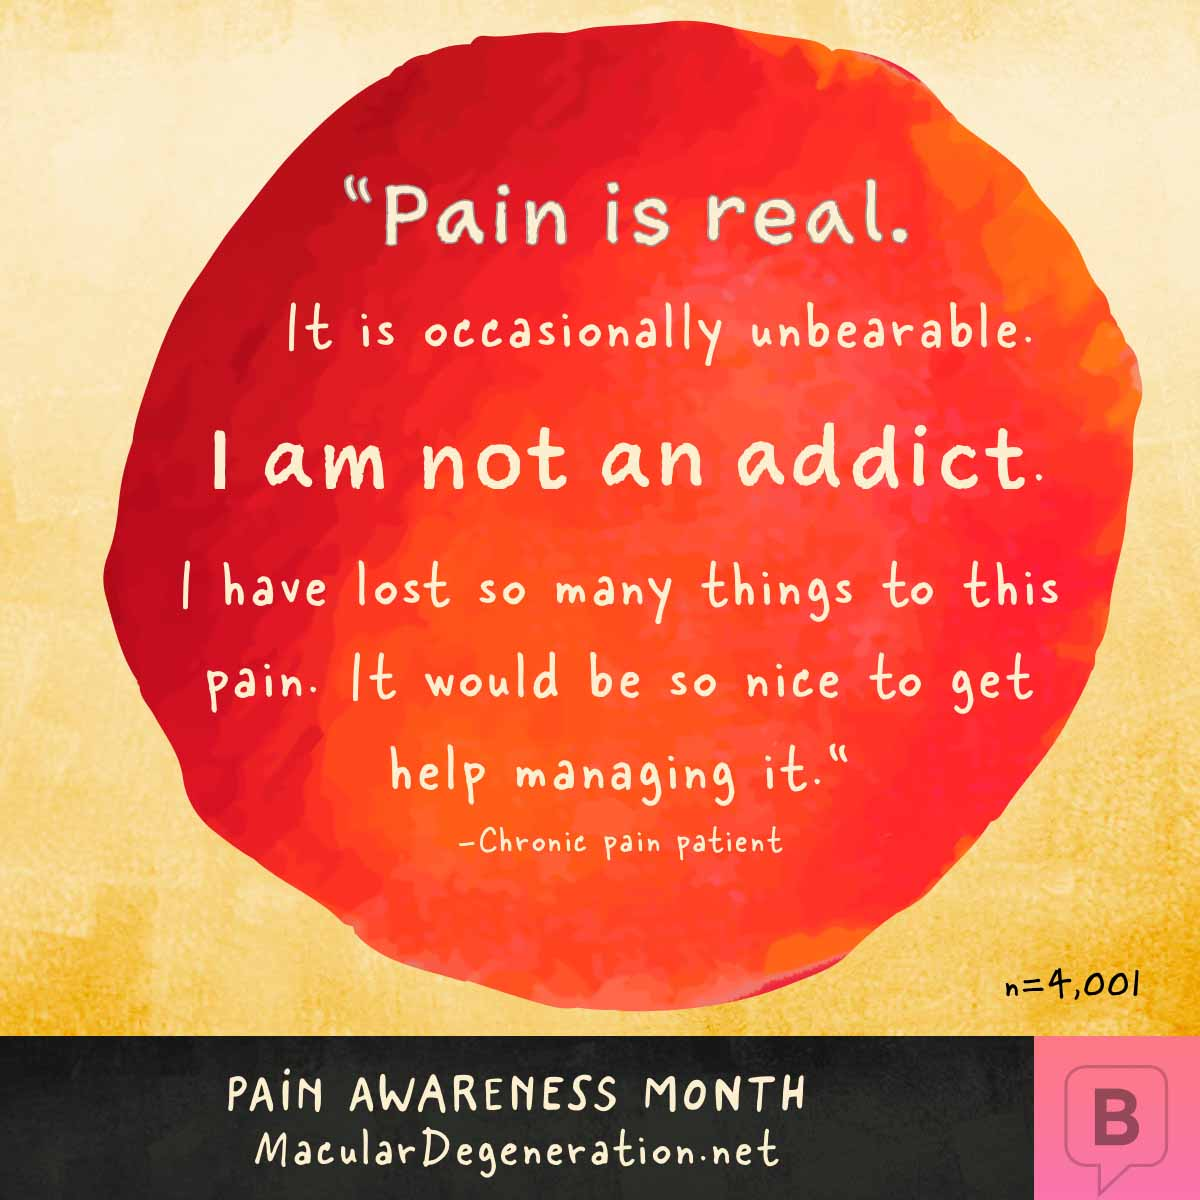 Quote describing pain as real, unbearable, and life changing. They are not an addict and just want help with the pain